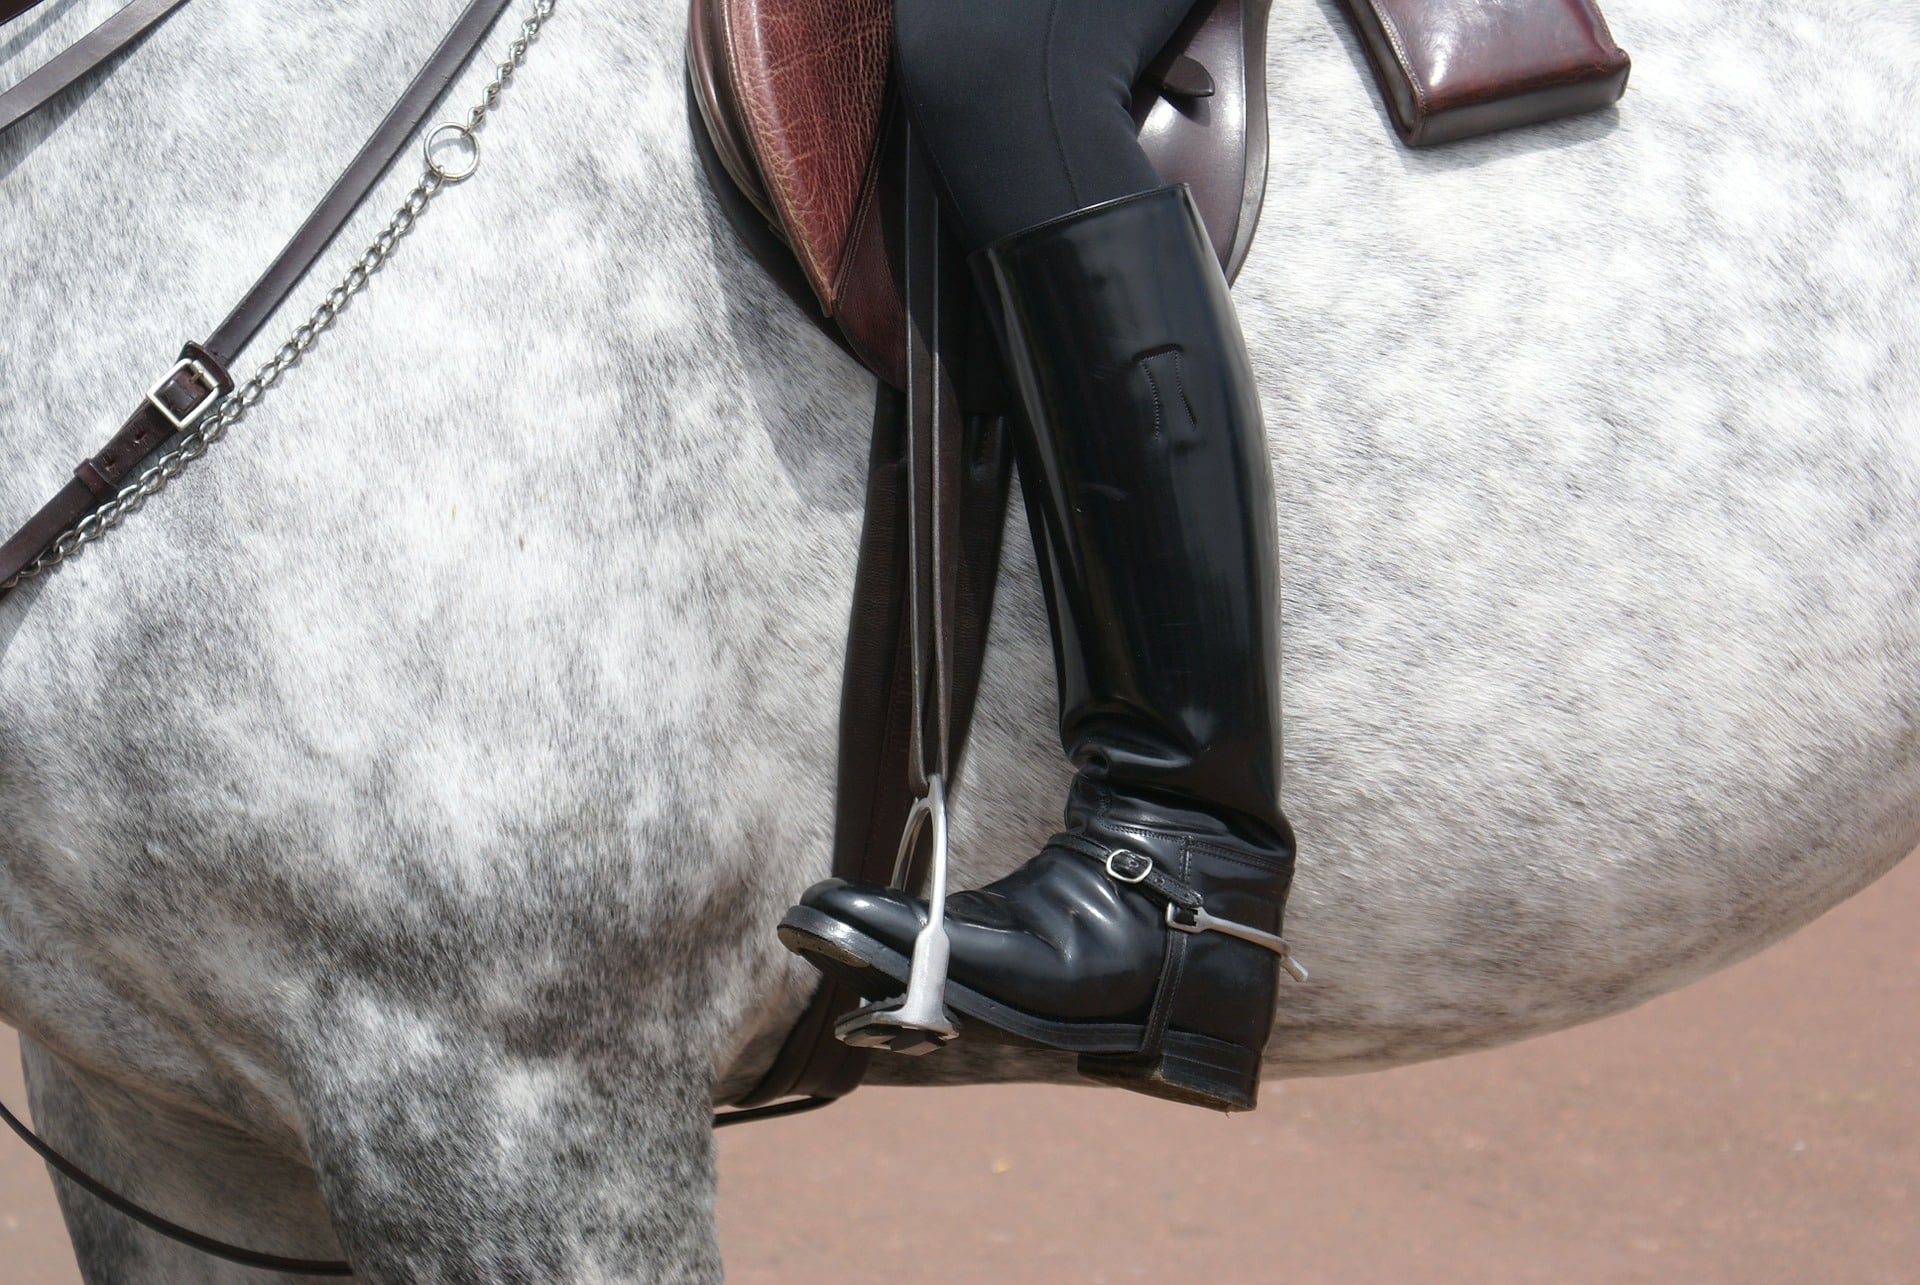 English horseback riding boots